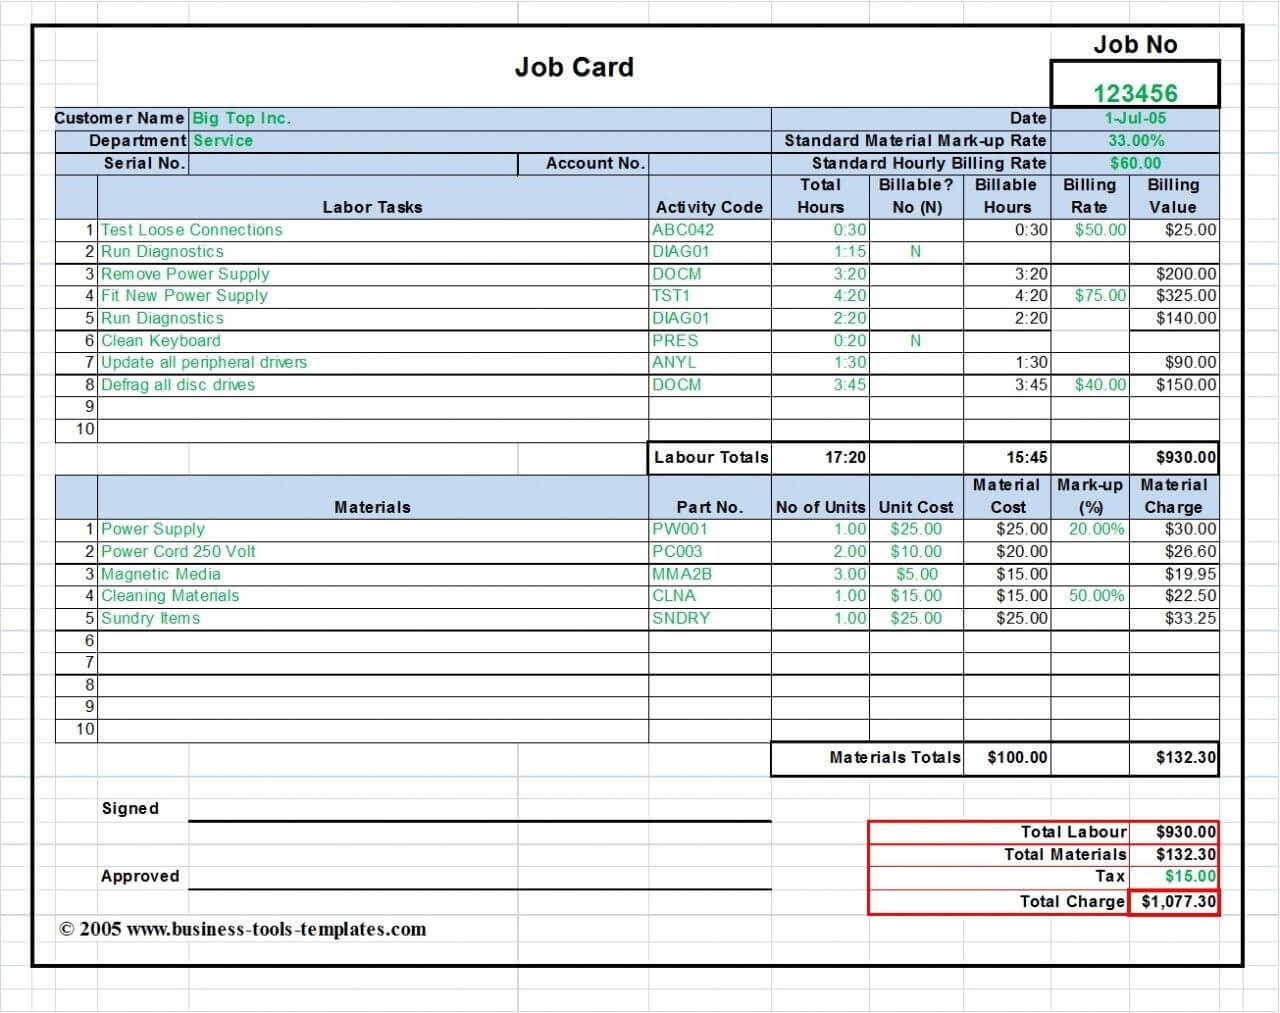 Workshop Job Card Template Excel, Labor & Material Cost within Job Cost Report Template Excel